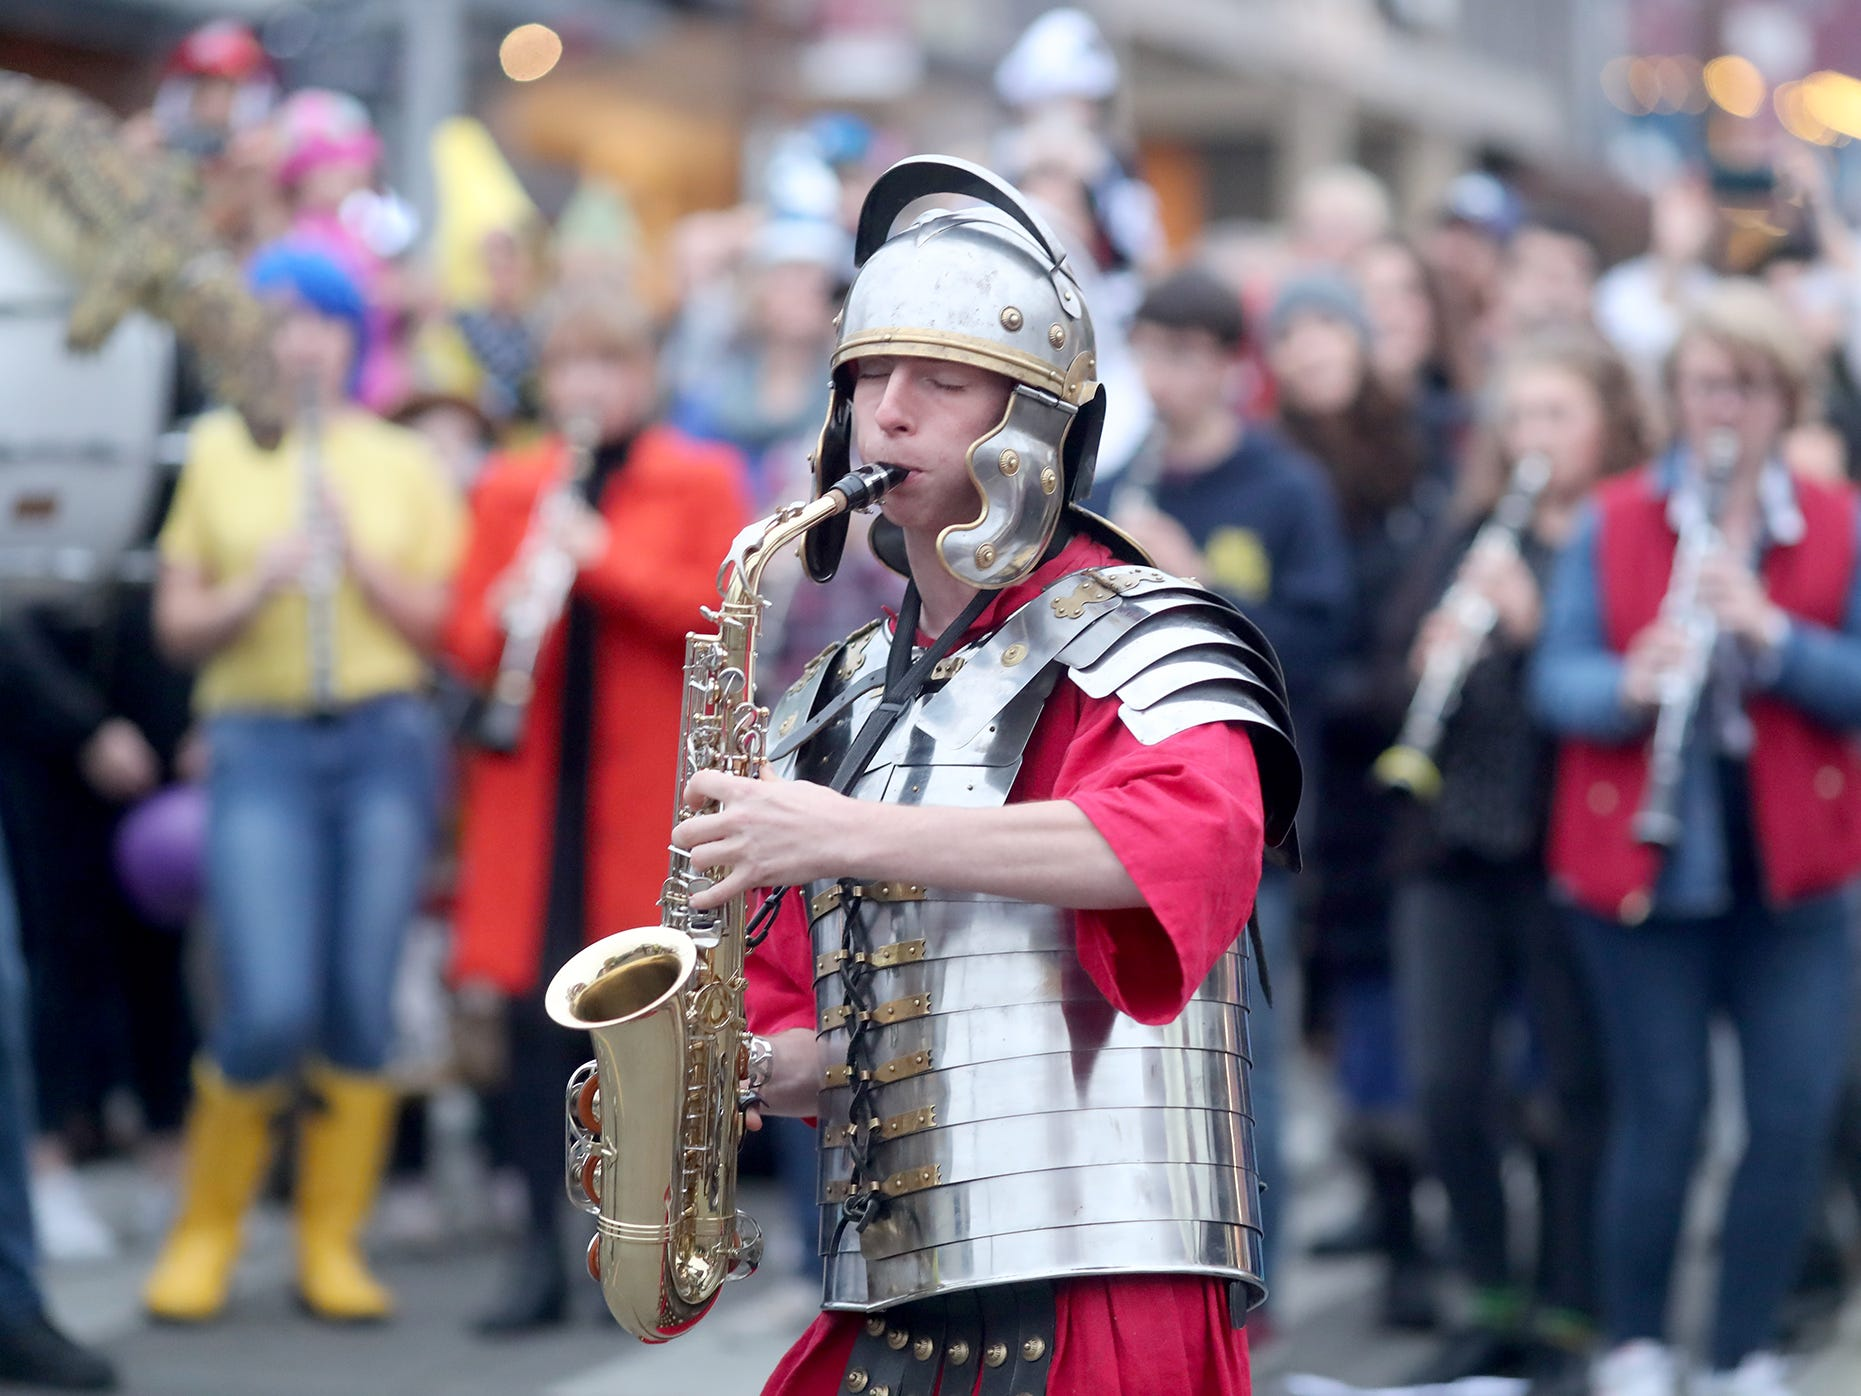 Bainbridge band member Sean Halstead dressed as a Roman to play the sax at the Bainbridge Island Halloween Walk on October, 31, 2018.